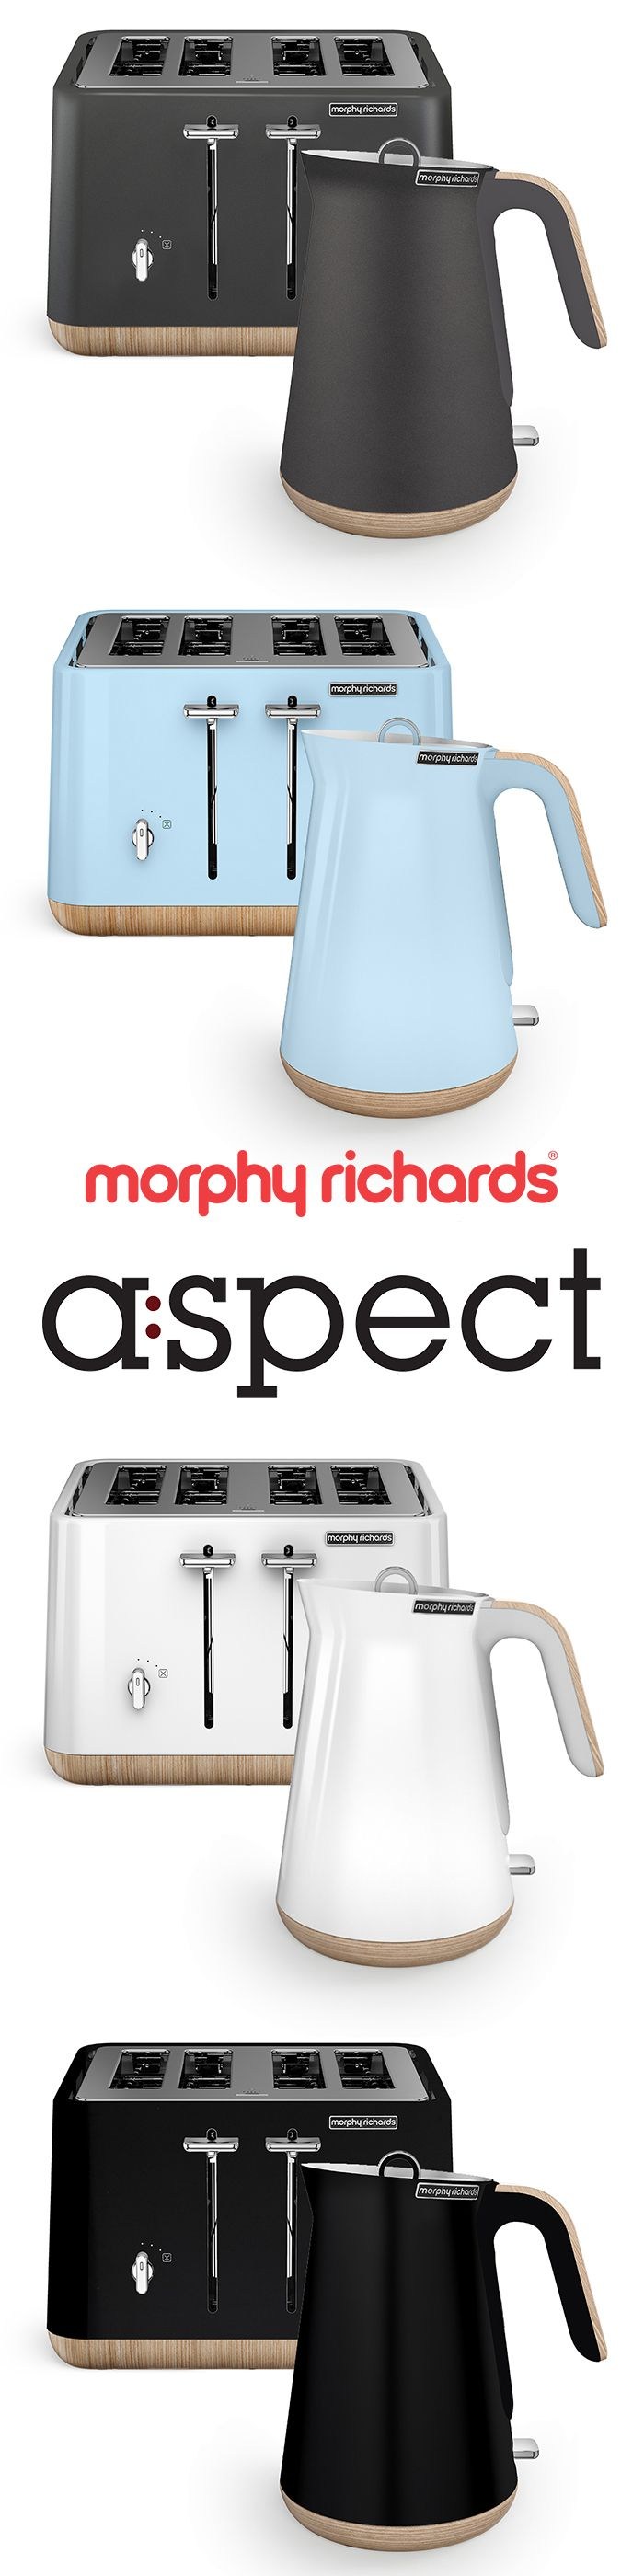 The Scandi Aspect sets of kettle and toaster by Morphy Richards are the talk of the town. These gorgeously styled appliances have wooden trims and all the functionality expected in a modern kitchen. Go Scandinavian!